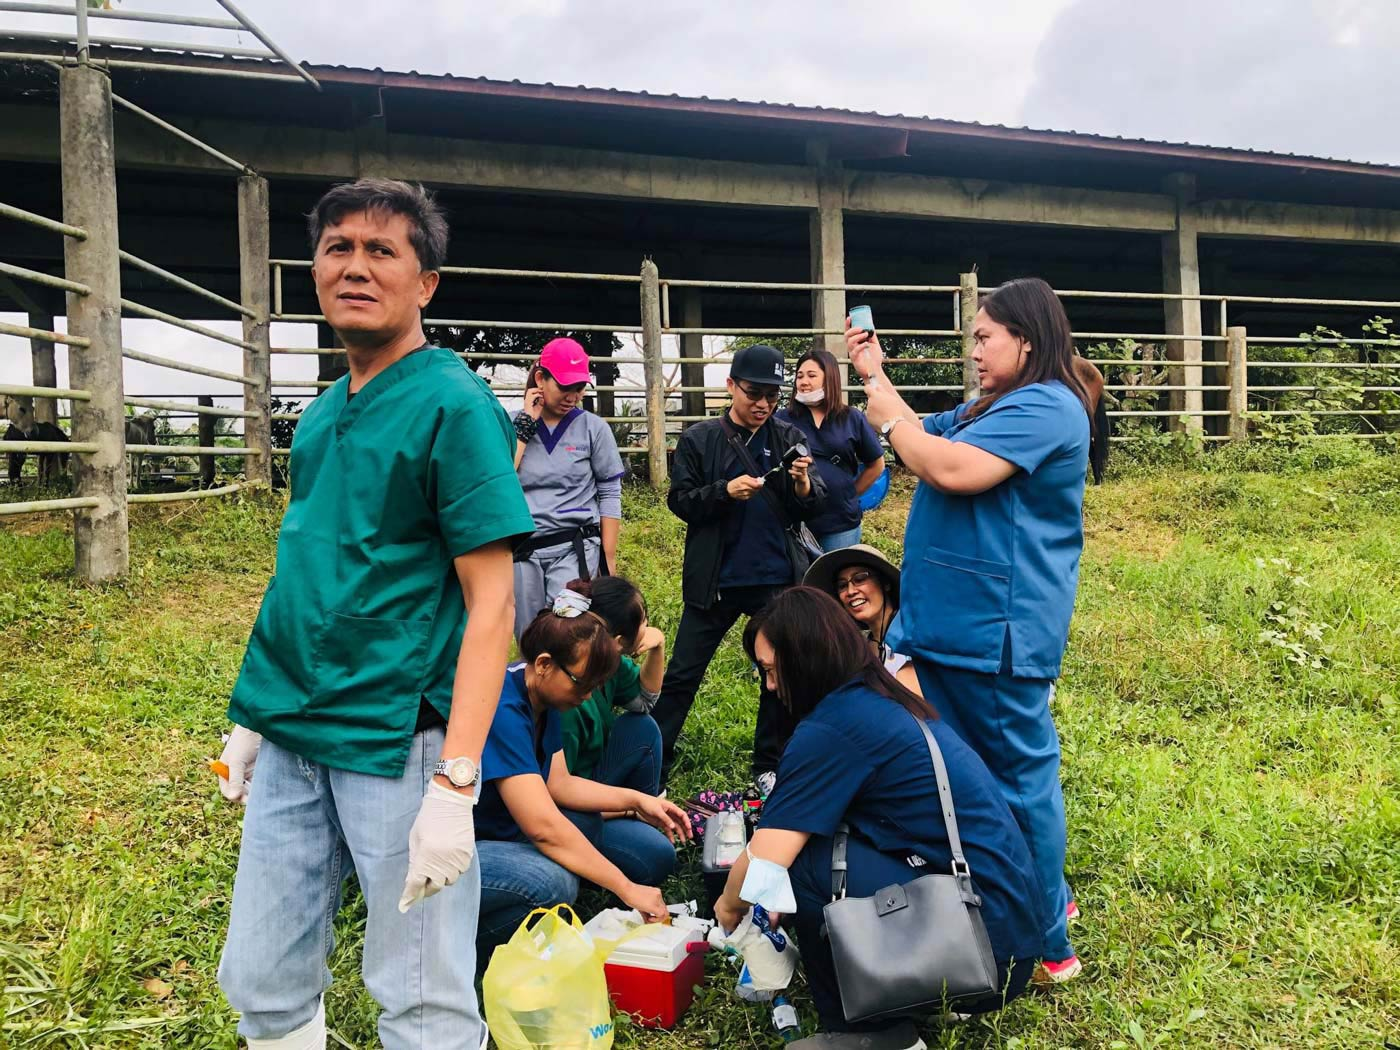 CAVITE Provincial Veterinary Office staff and volunteers on January 18, 2020, rescue and treat animals affected by the Taal Volcano eruption. Photo courtesy of Cavite PIO